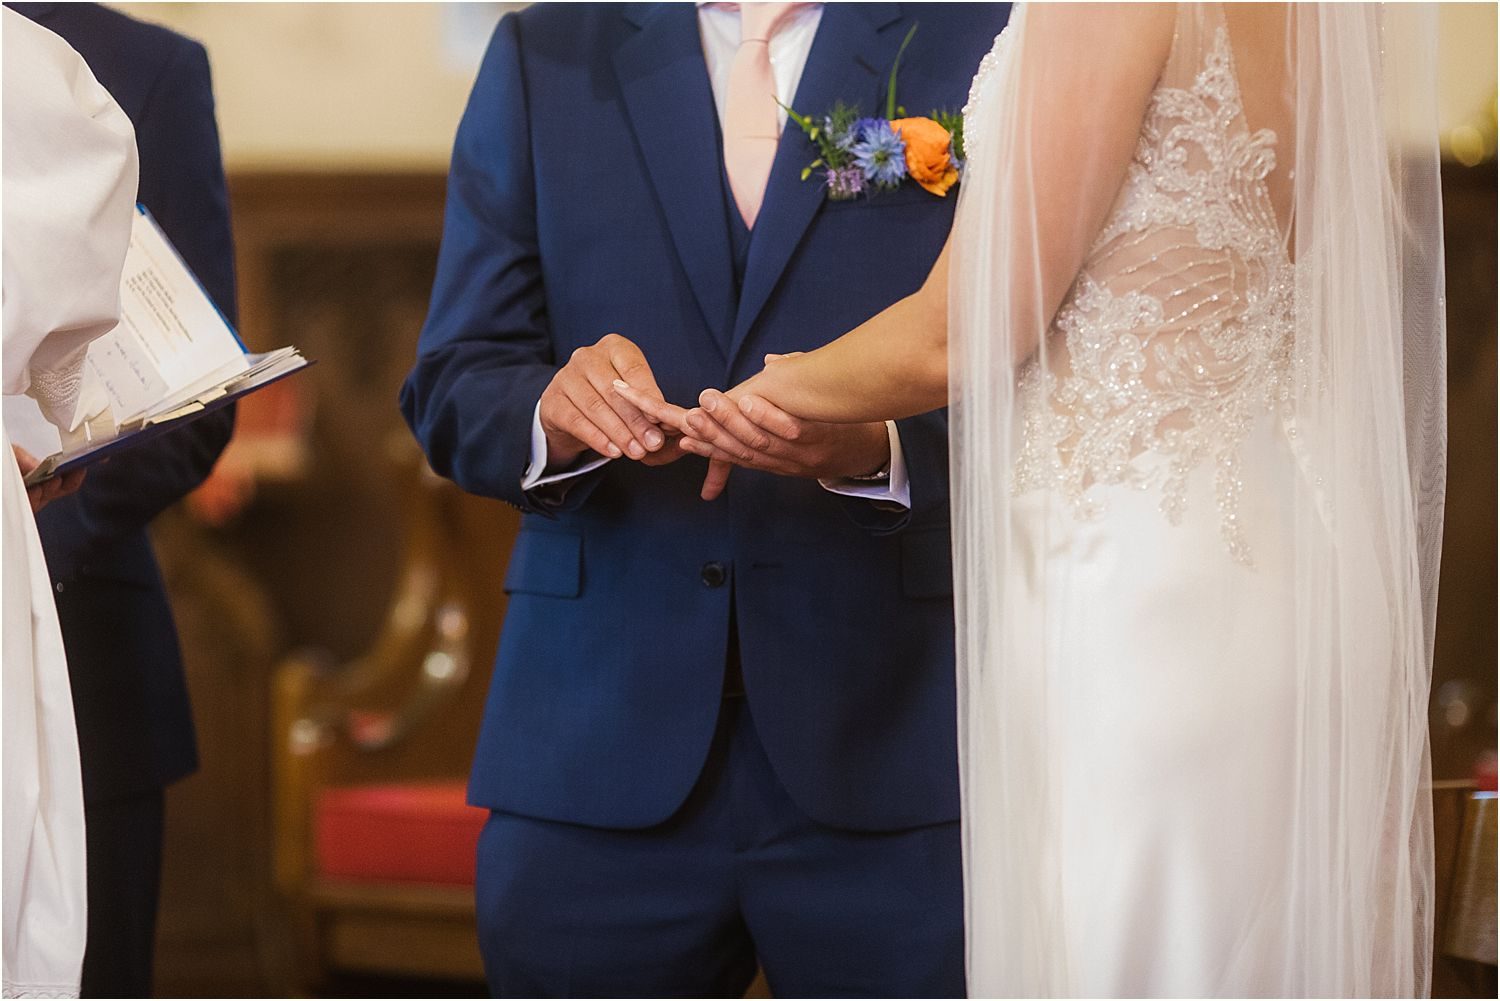 groom places ring on brides finger at wedding in Lancashire